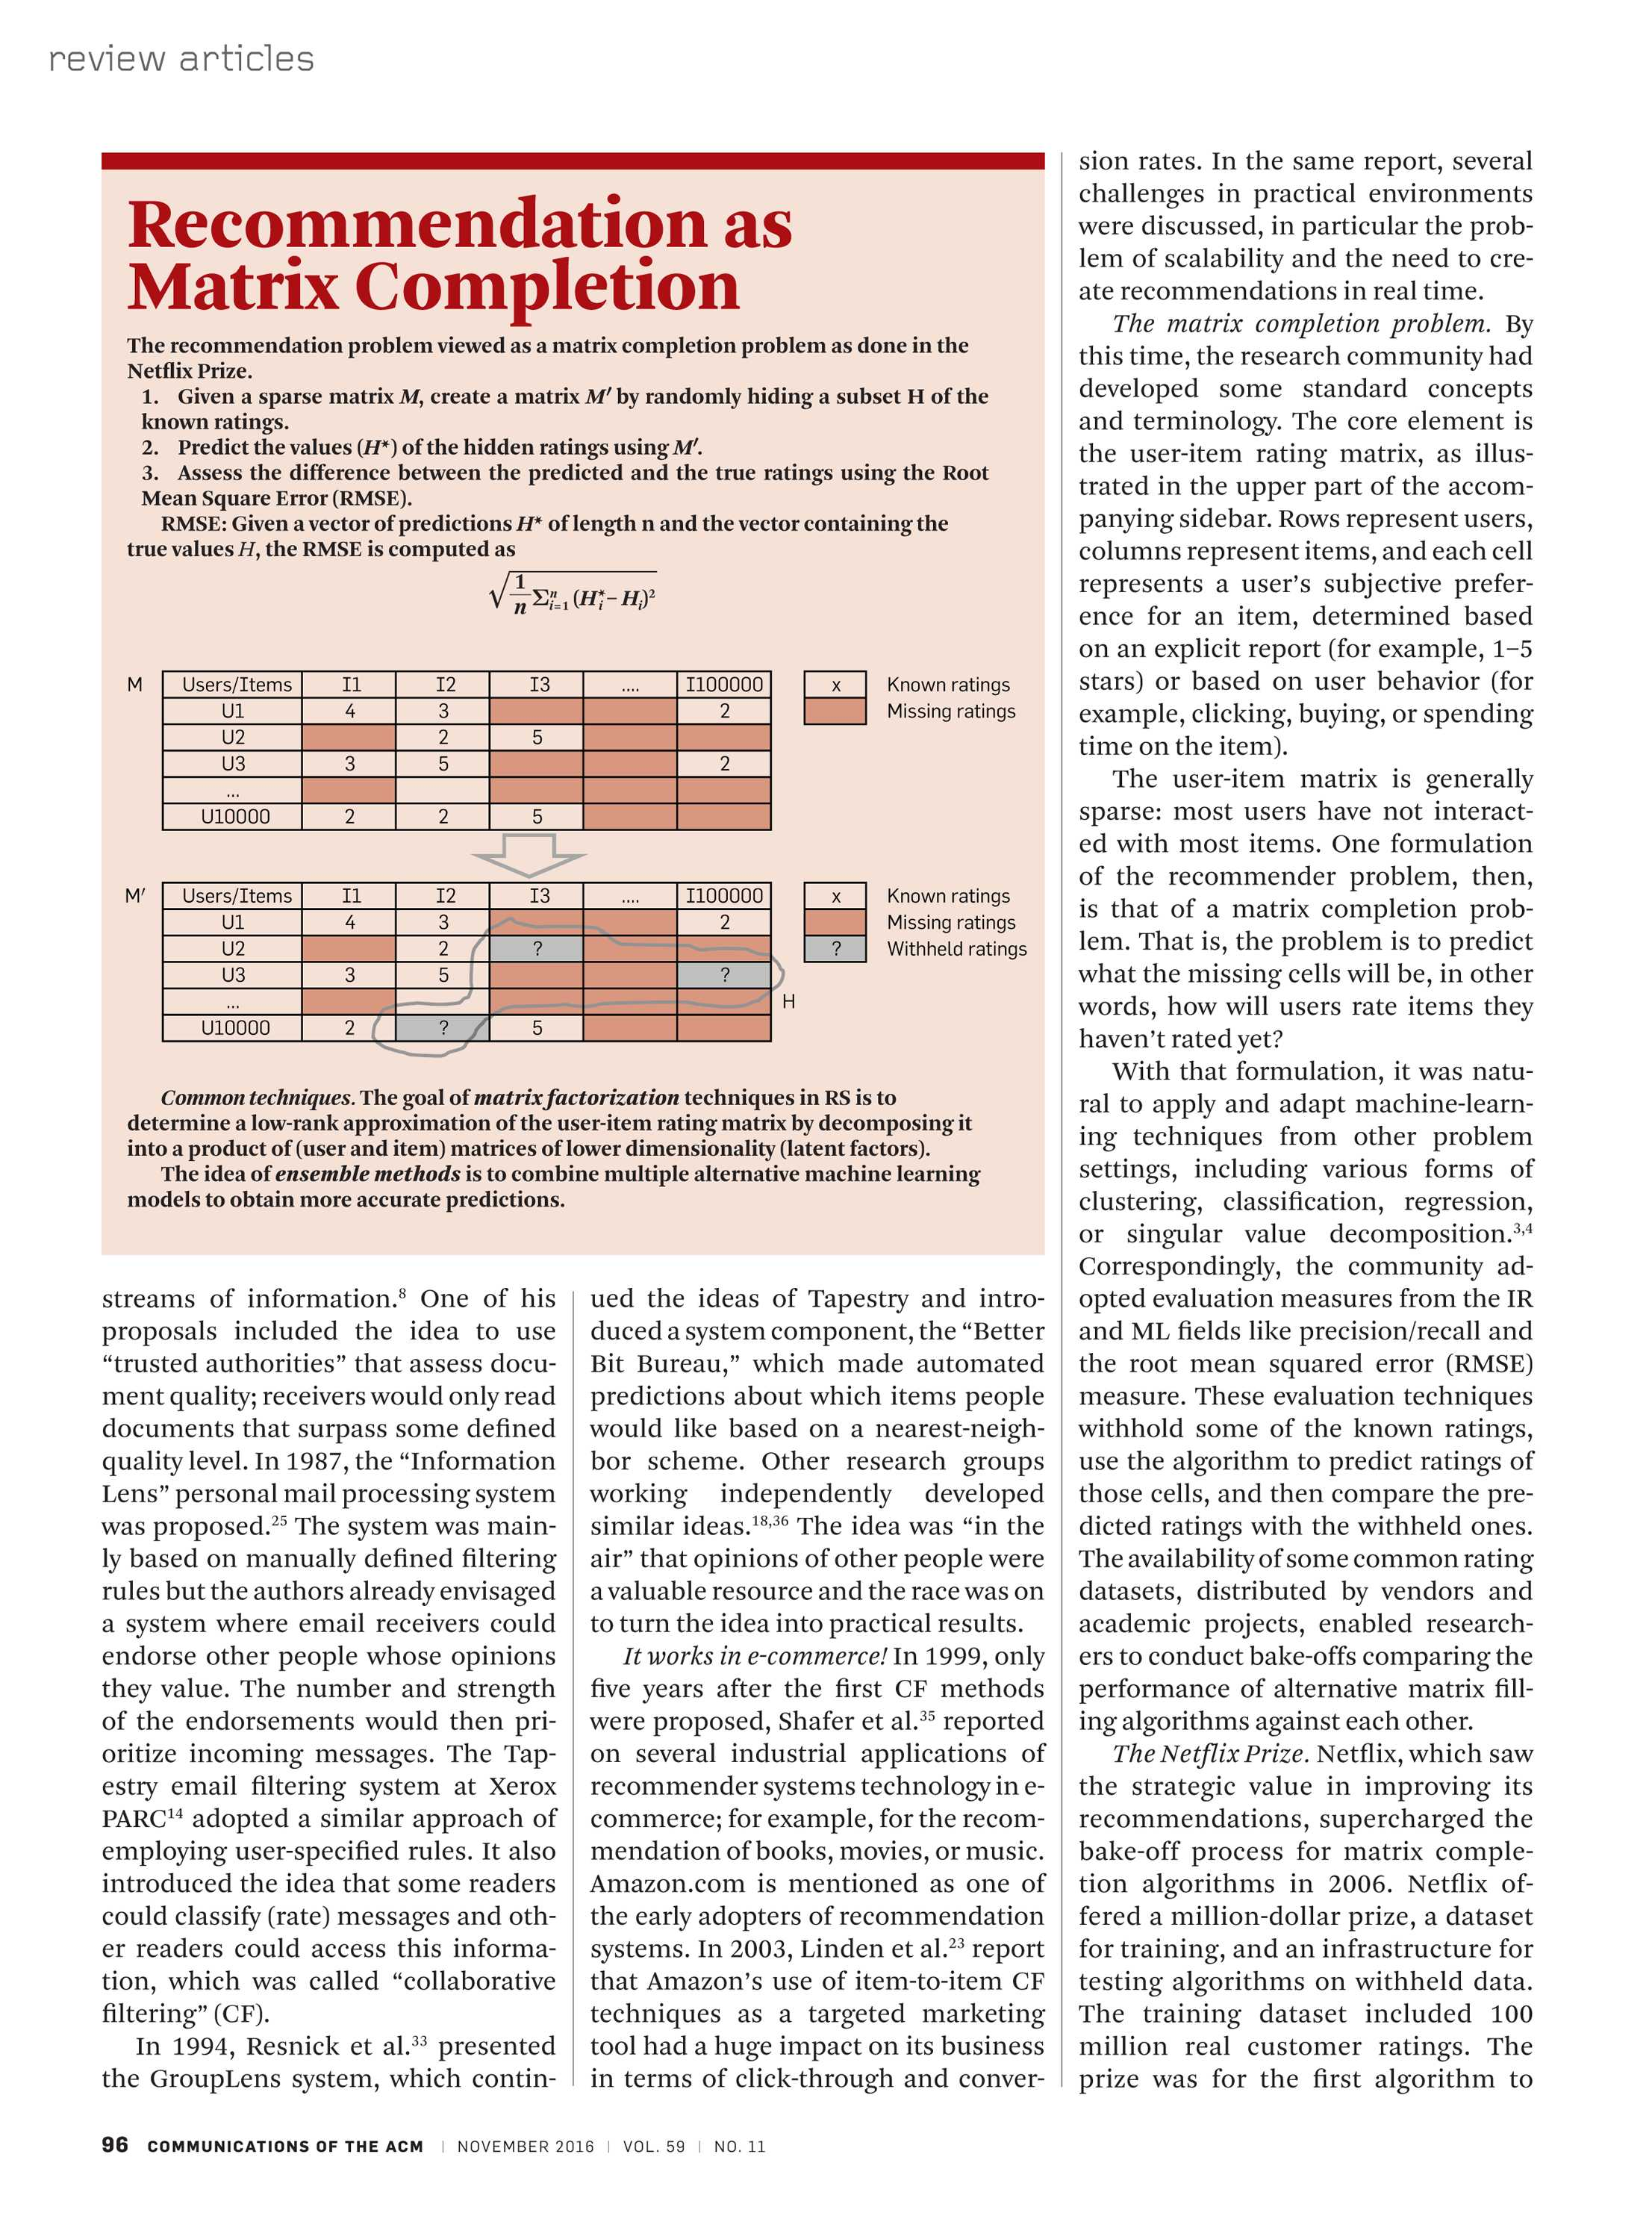 Communications of the ACM - November 2016 - page 96